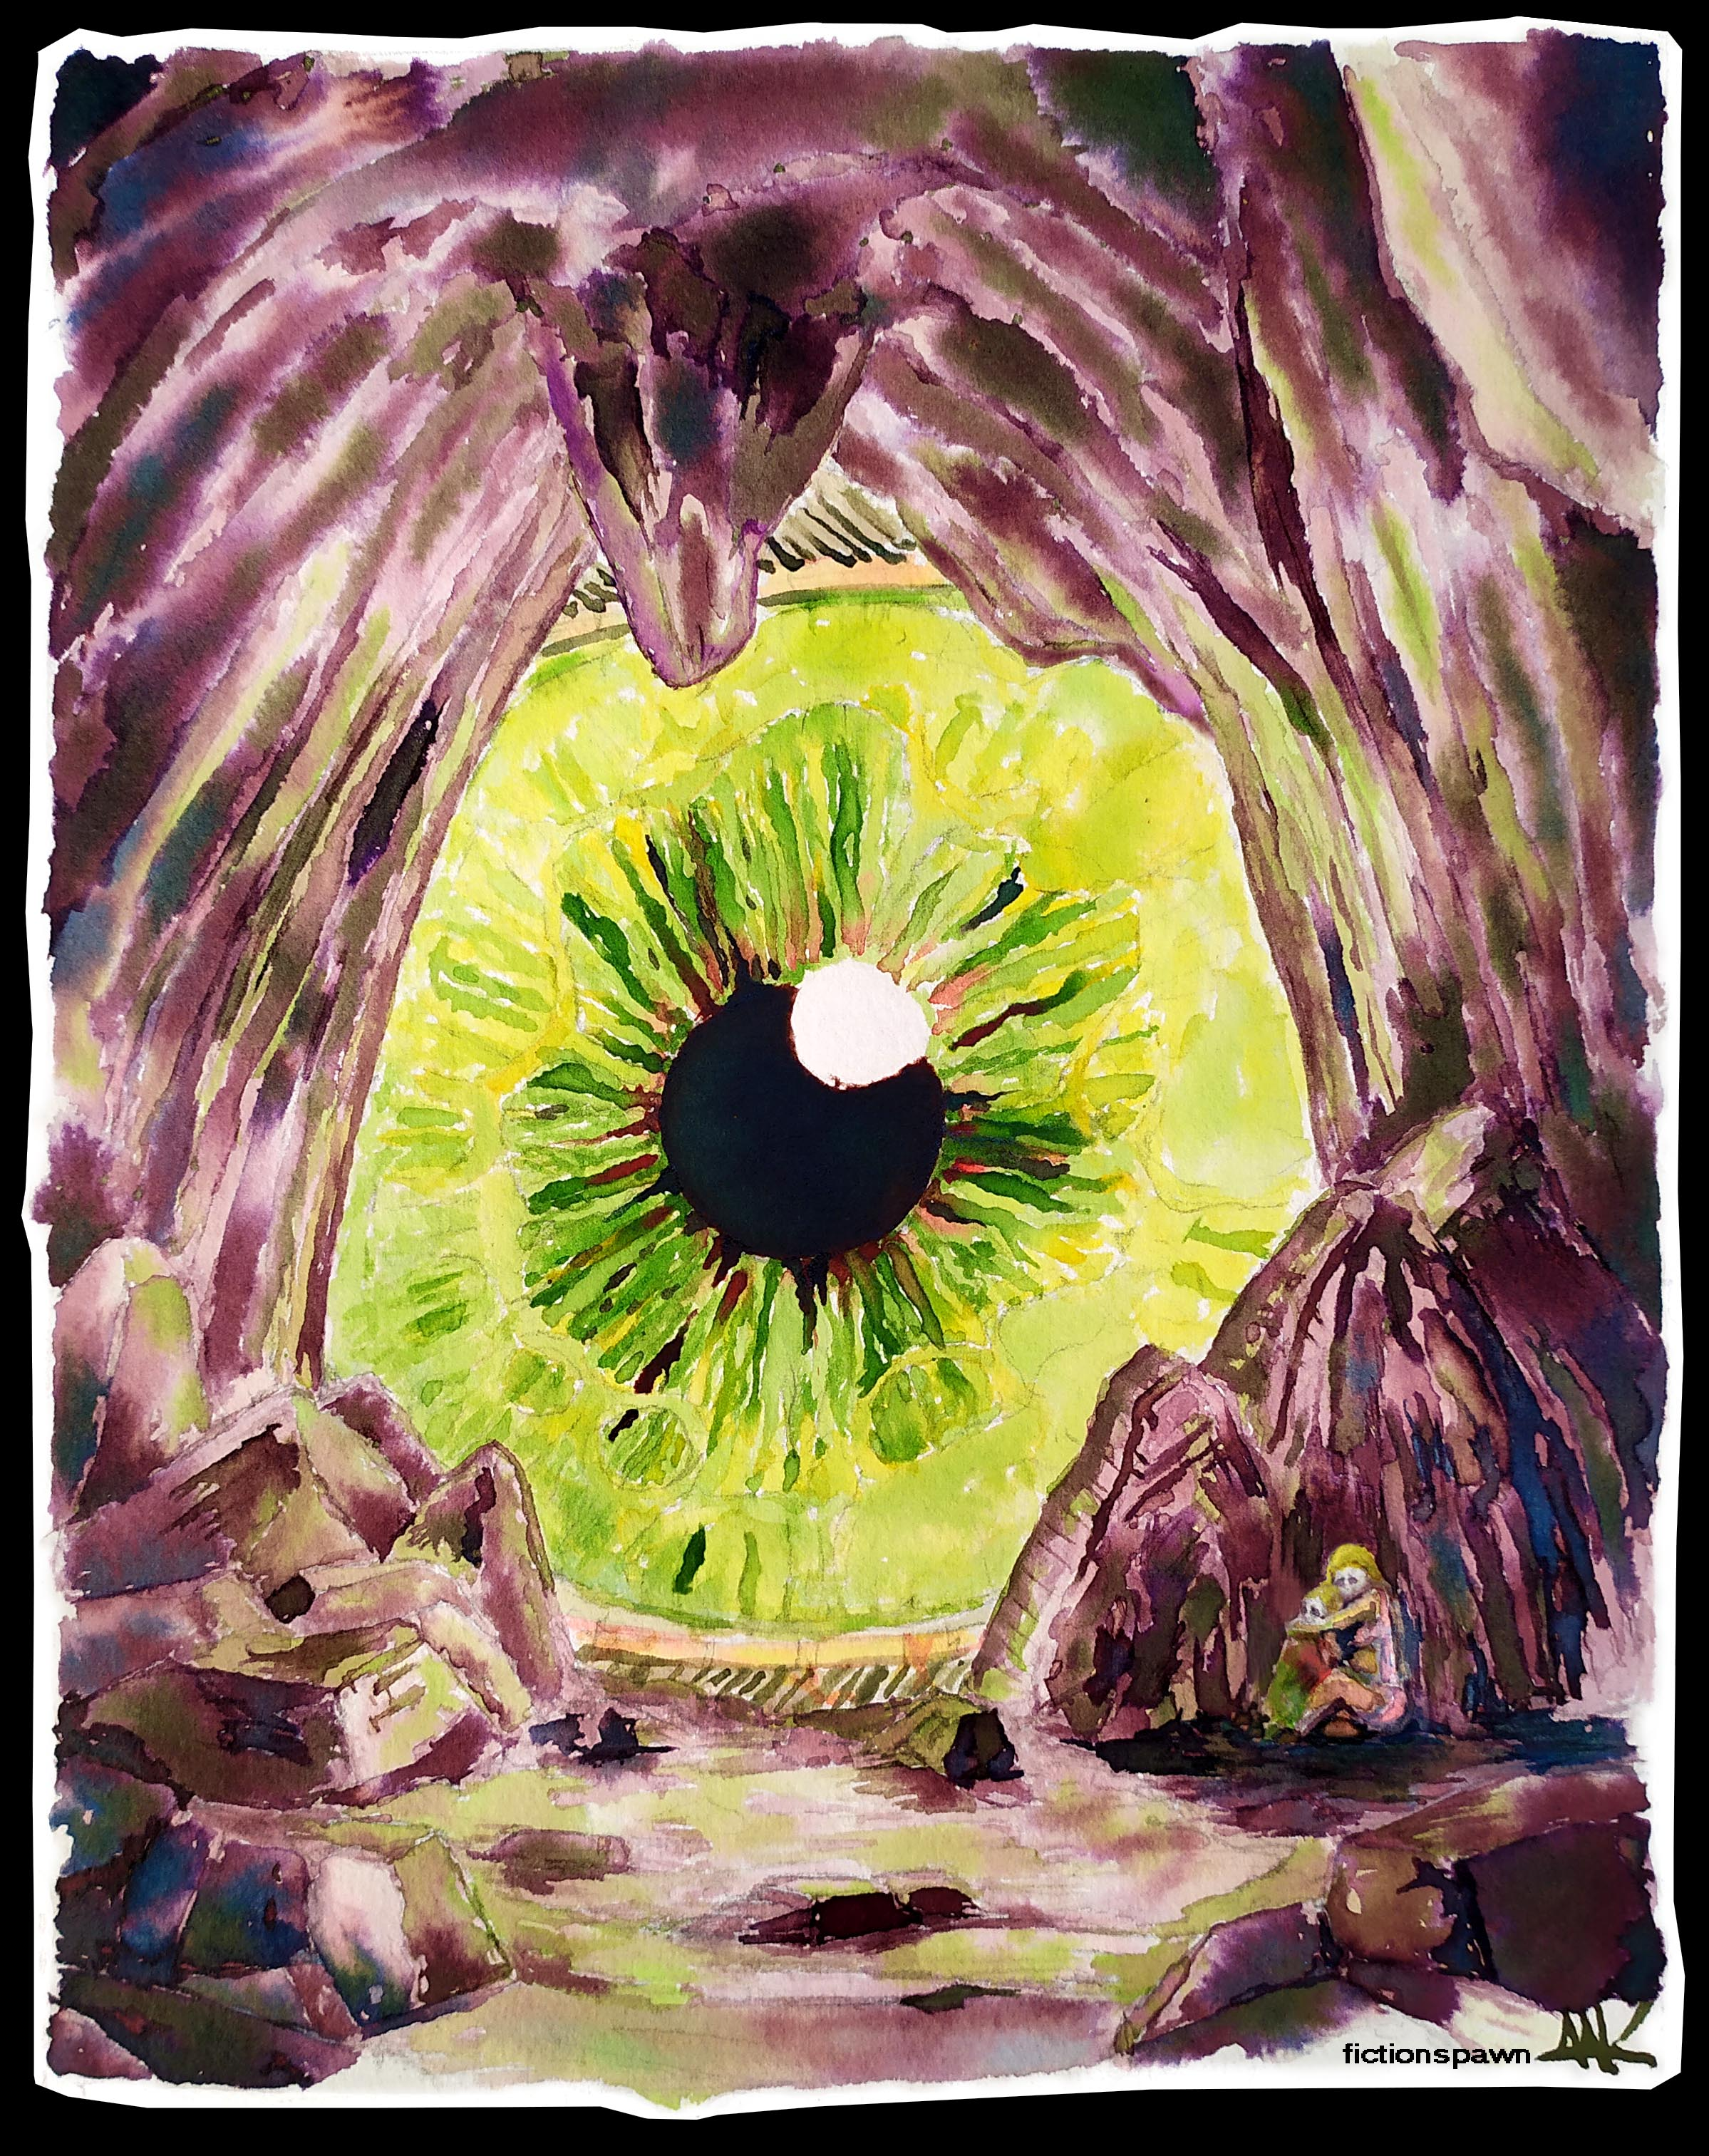 An eye and a cave Aak fictionspawn